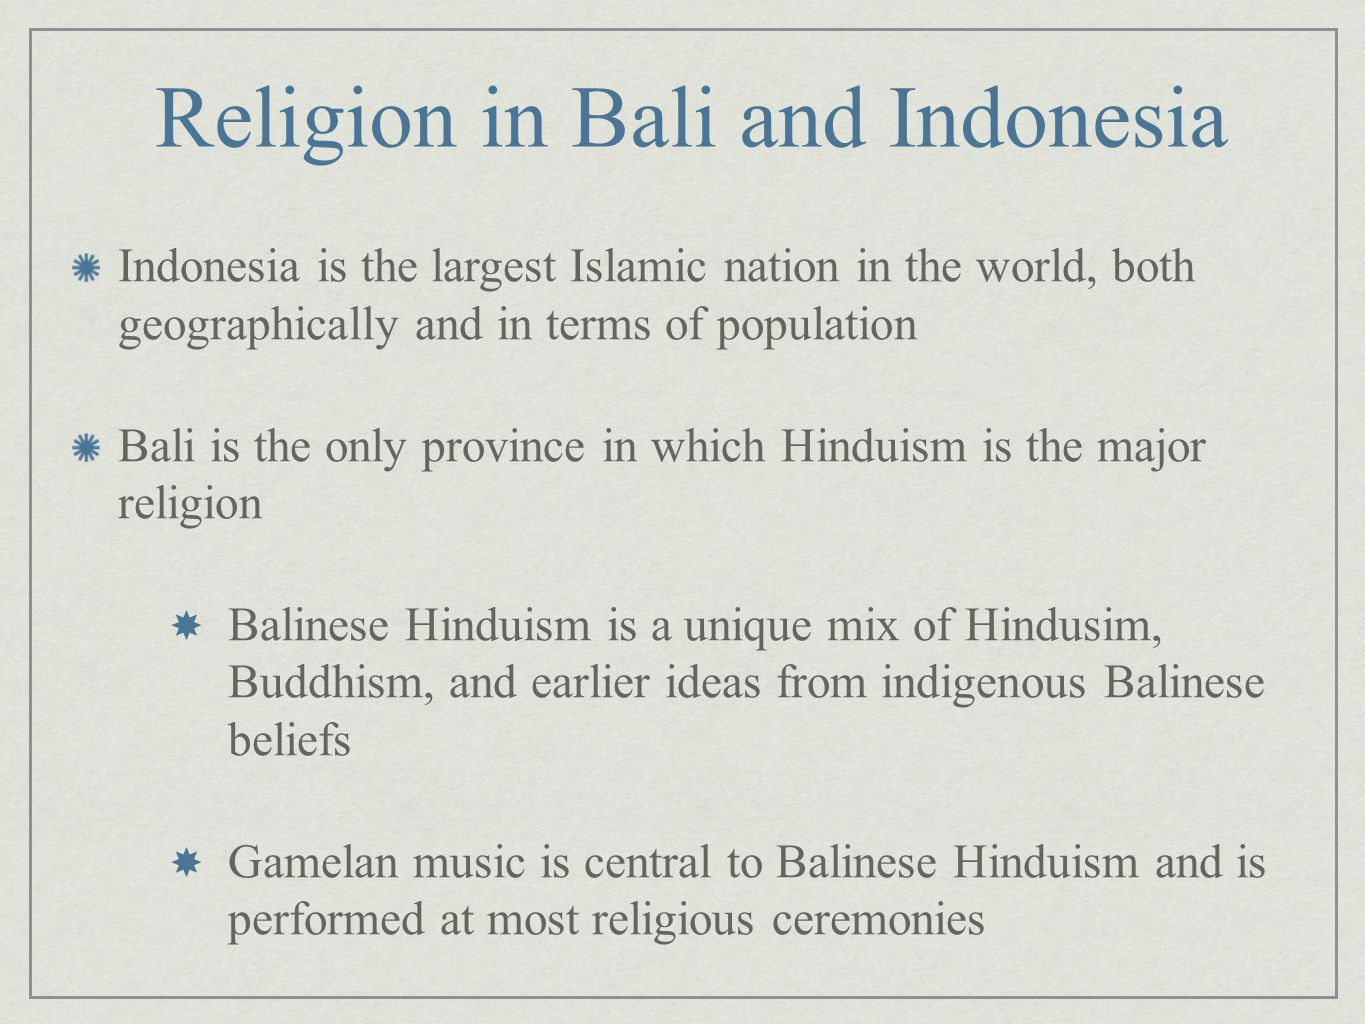 Religion in Bali and Indonesia